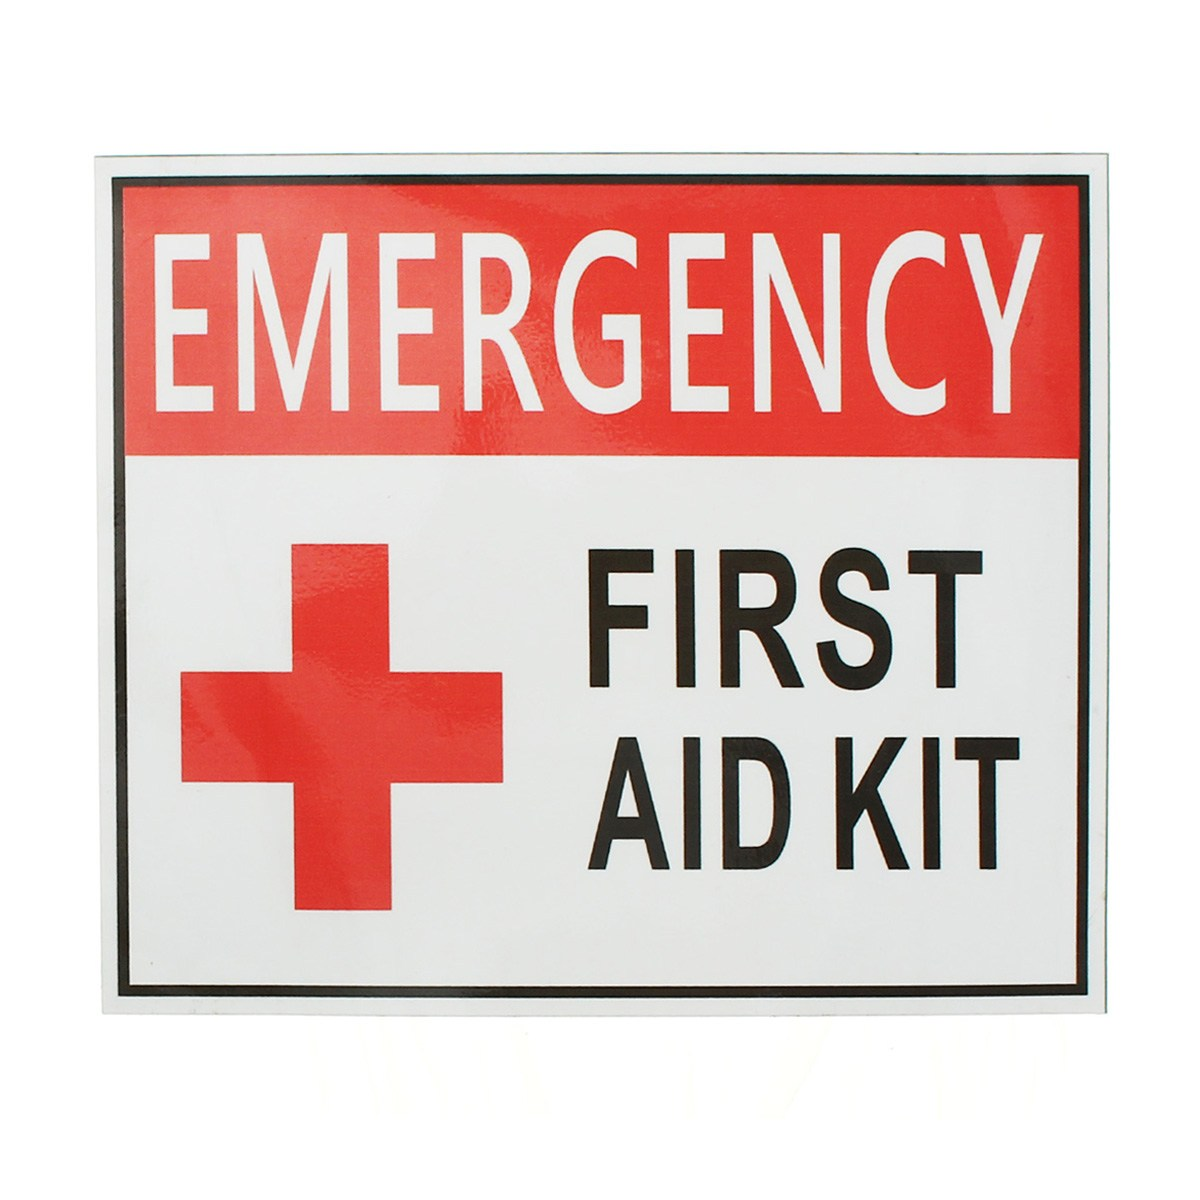 NEW 4 Size Outdoor Camping Hiking Emergency First Aid Sticker Waterproof Label Signs Red Cross Health Safety